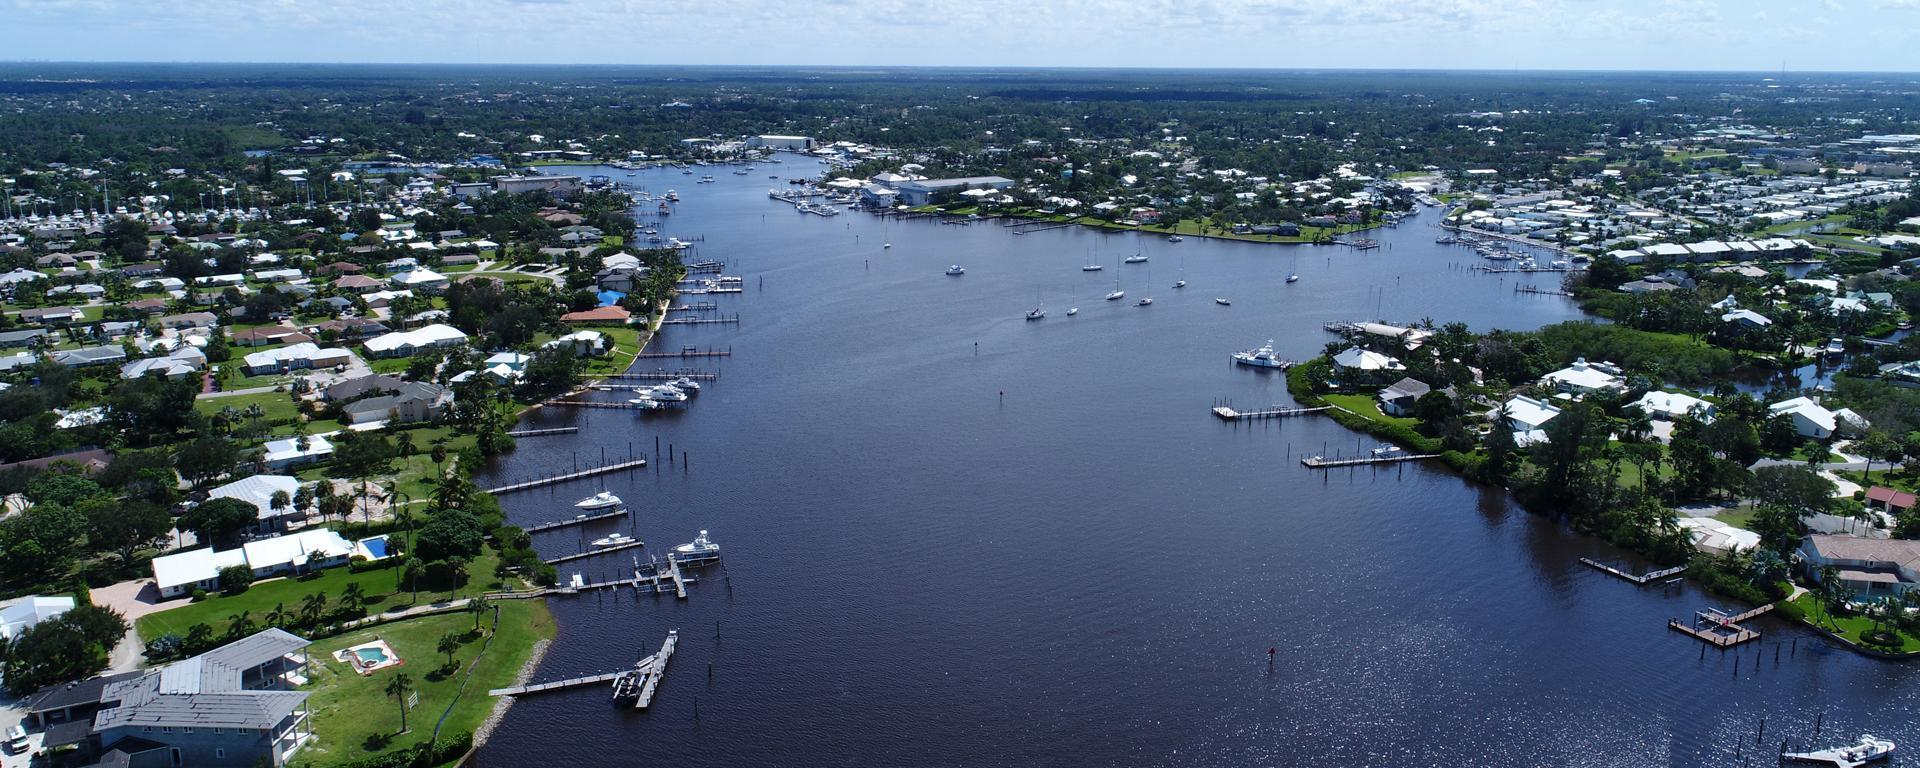 Aerial image above the Manatee Pocket